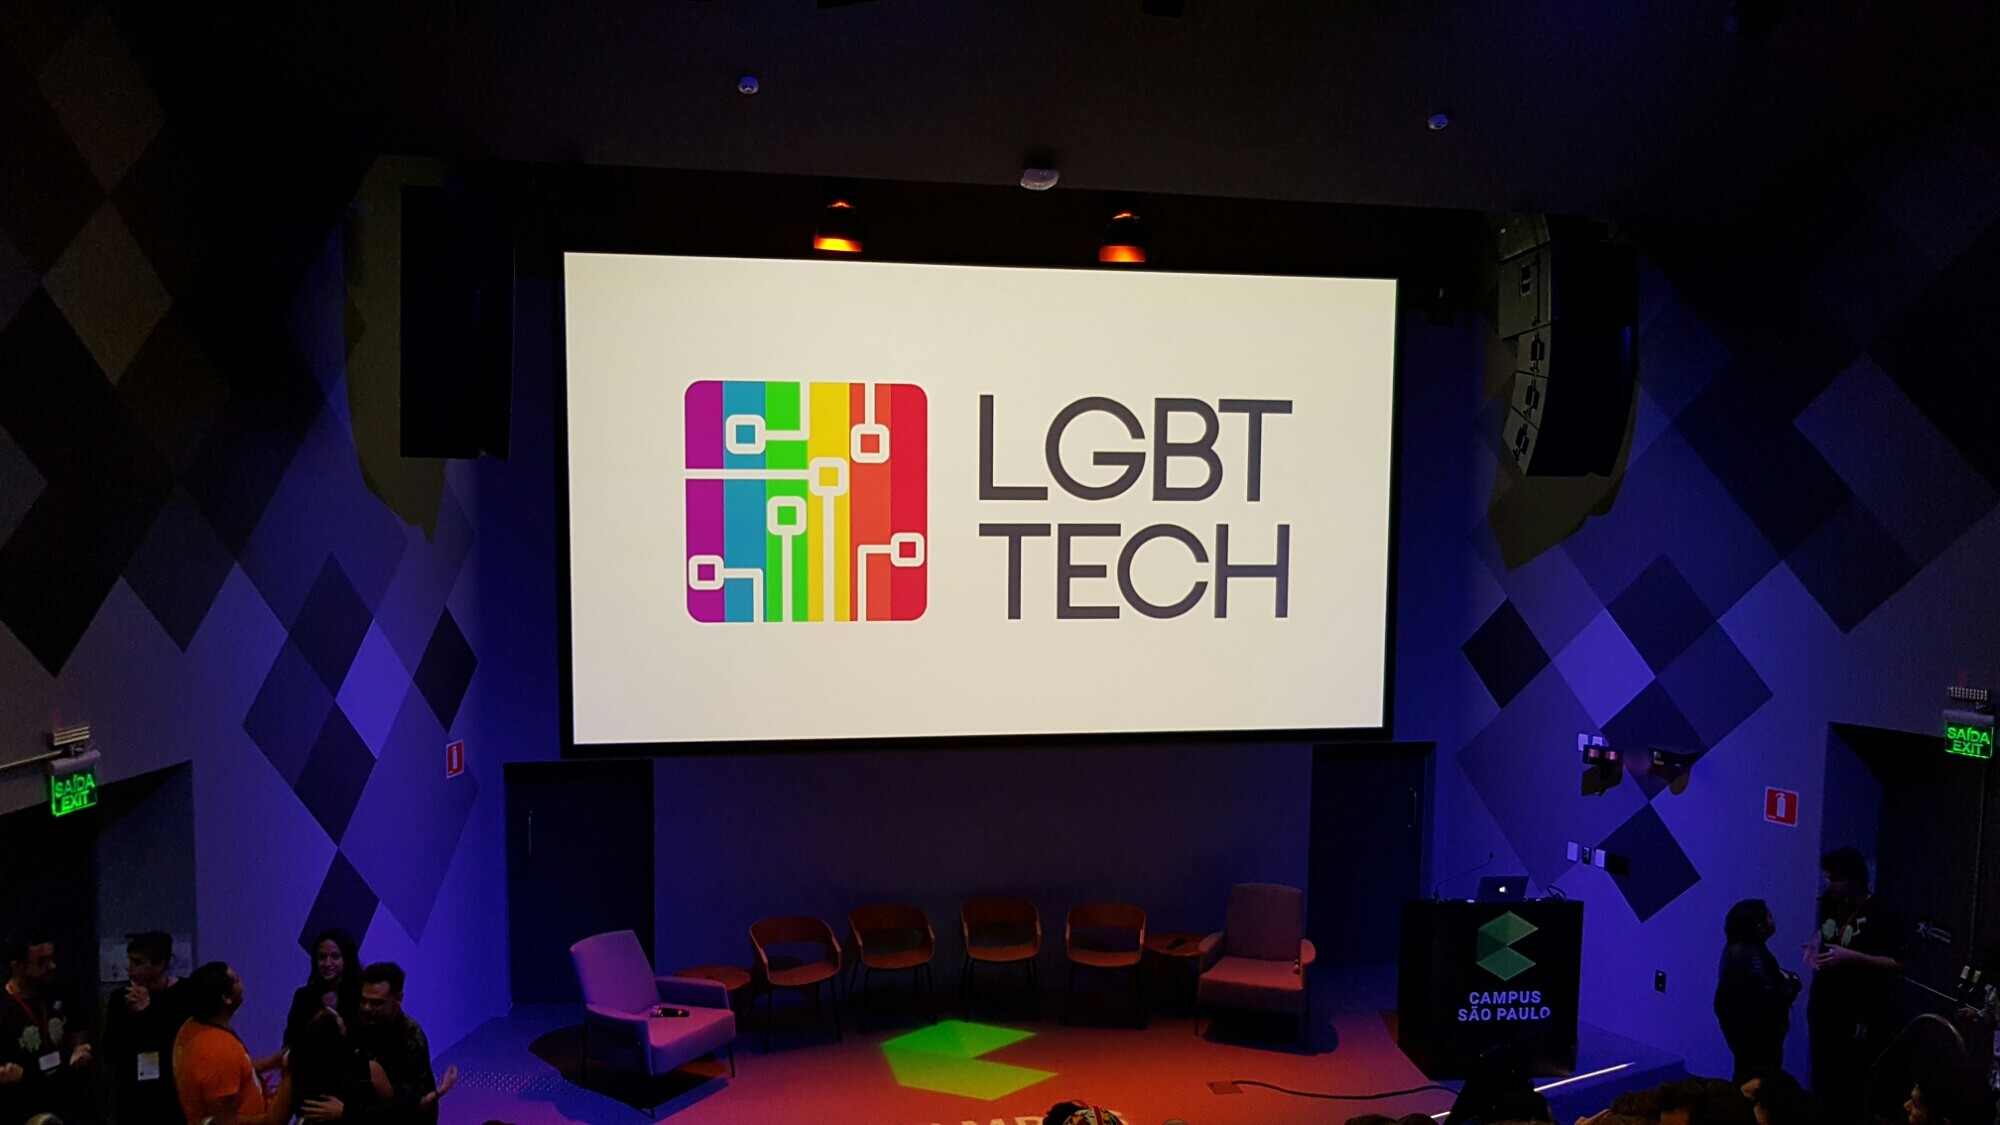 Google Campus recebe o LGBT TECH 4